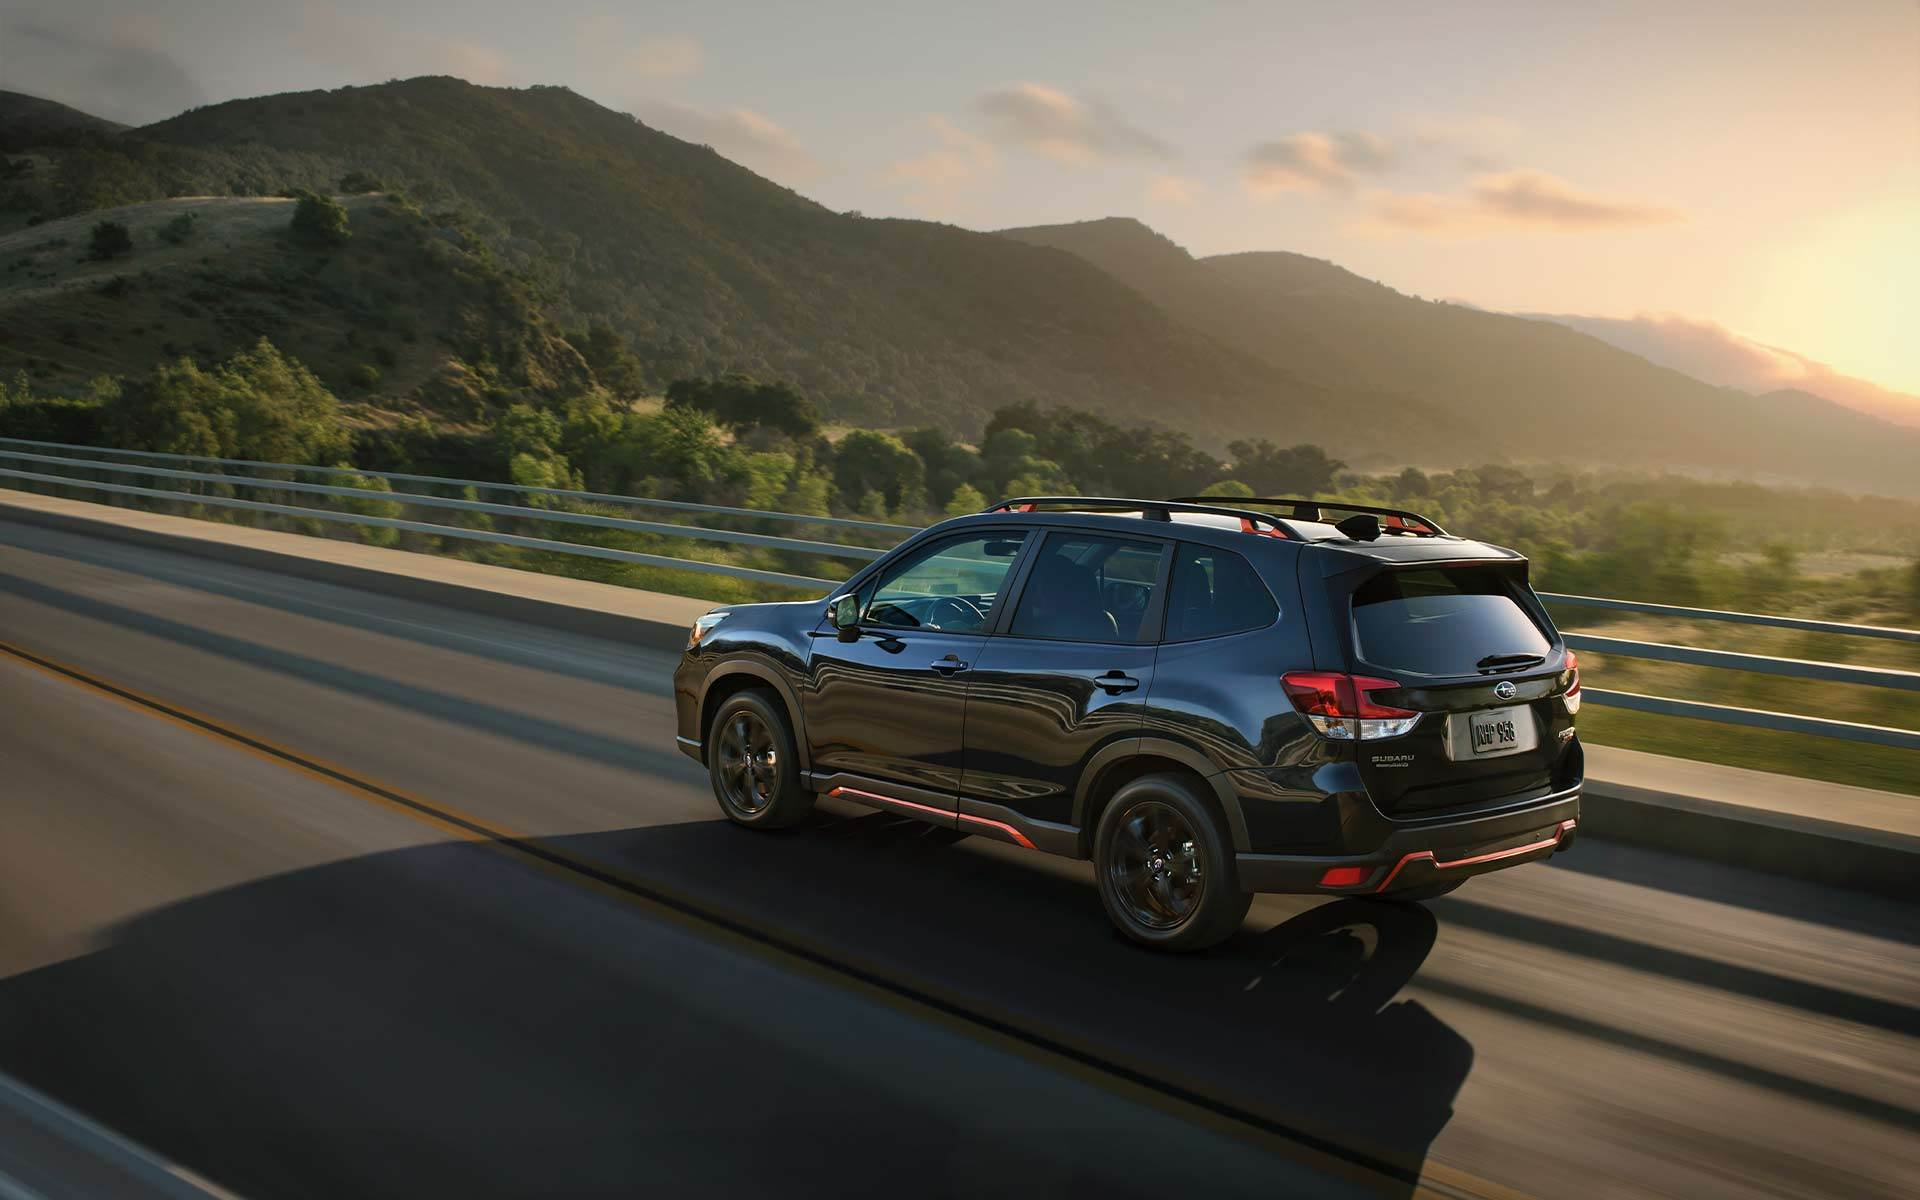 2021 Subaru Forester – Review, Pricing, Specs, Ranking